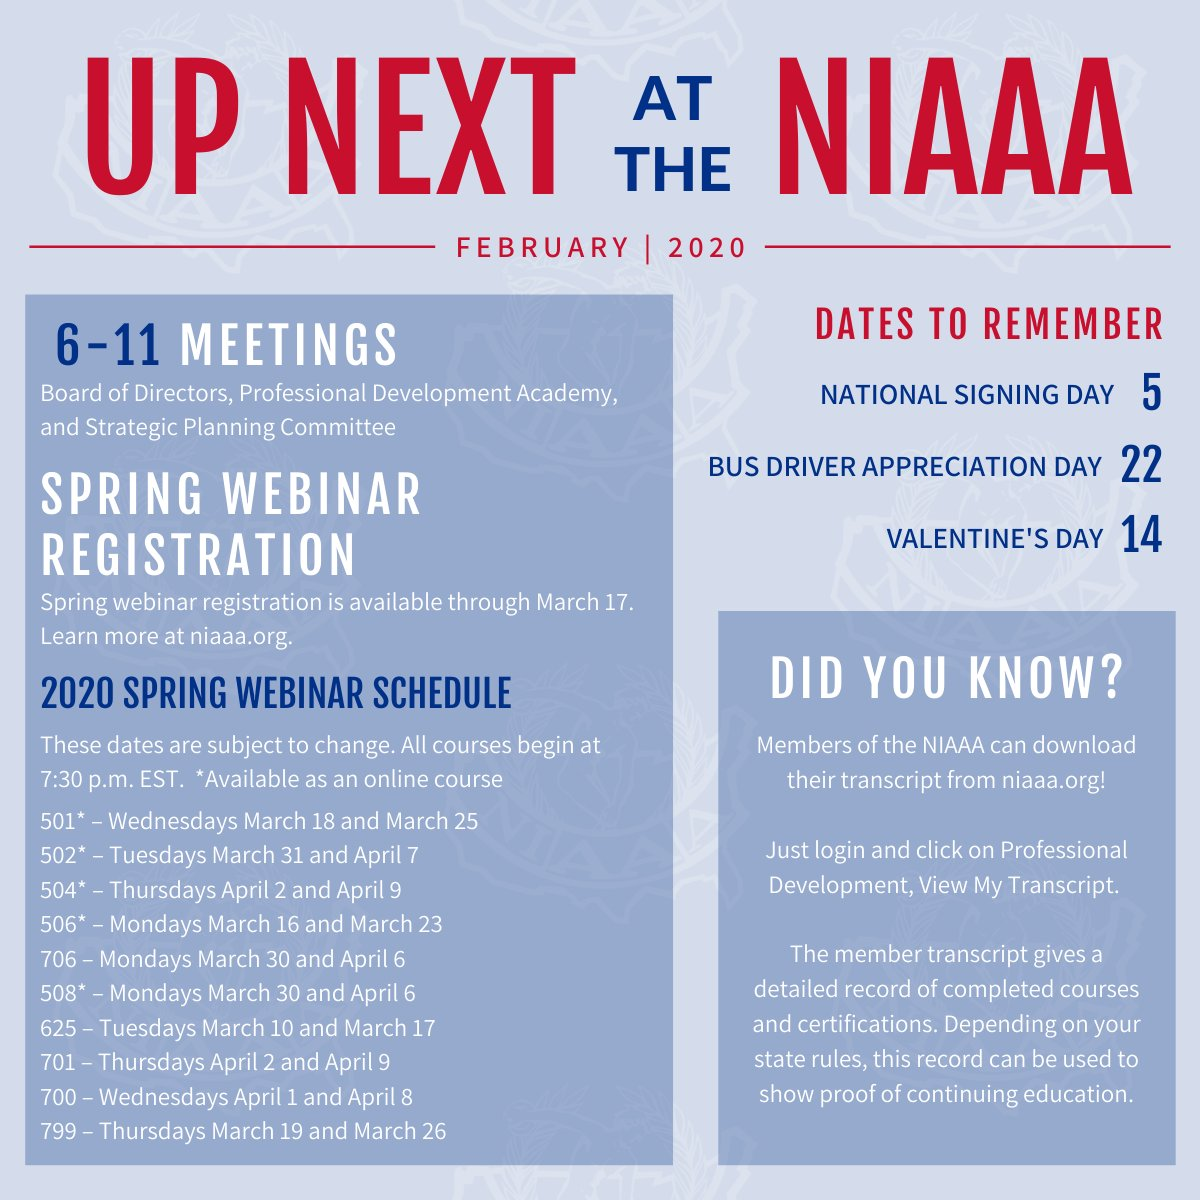 Take a look at what's going on this month at the NIAAA!